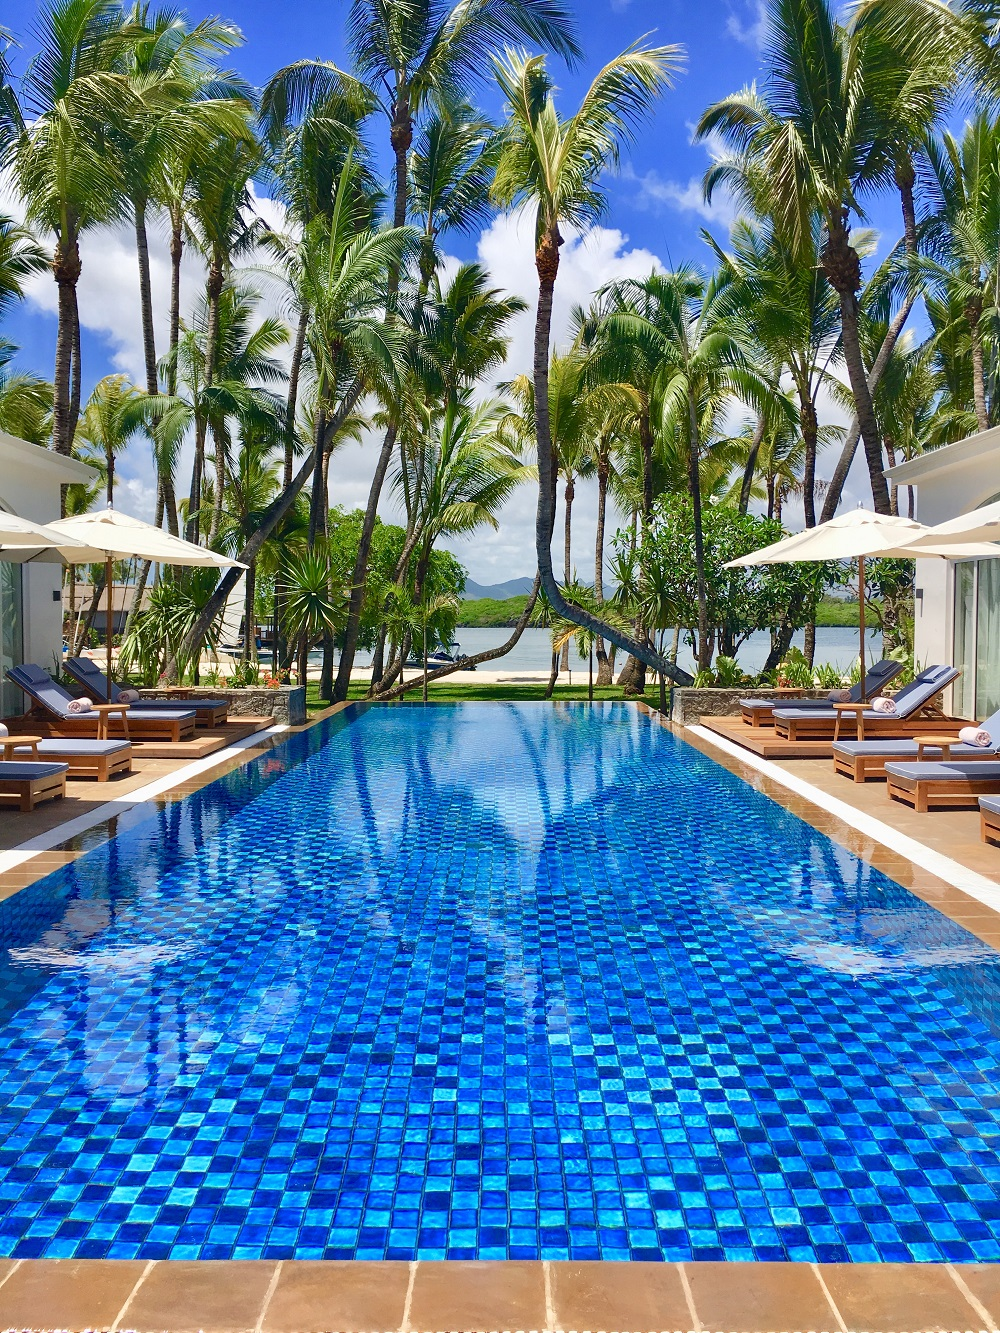 OO_LeSaintGeran_Spa_Pool One & Only Le St Geran